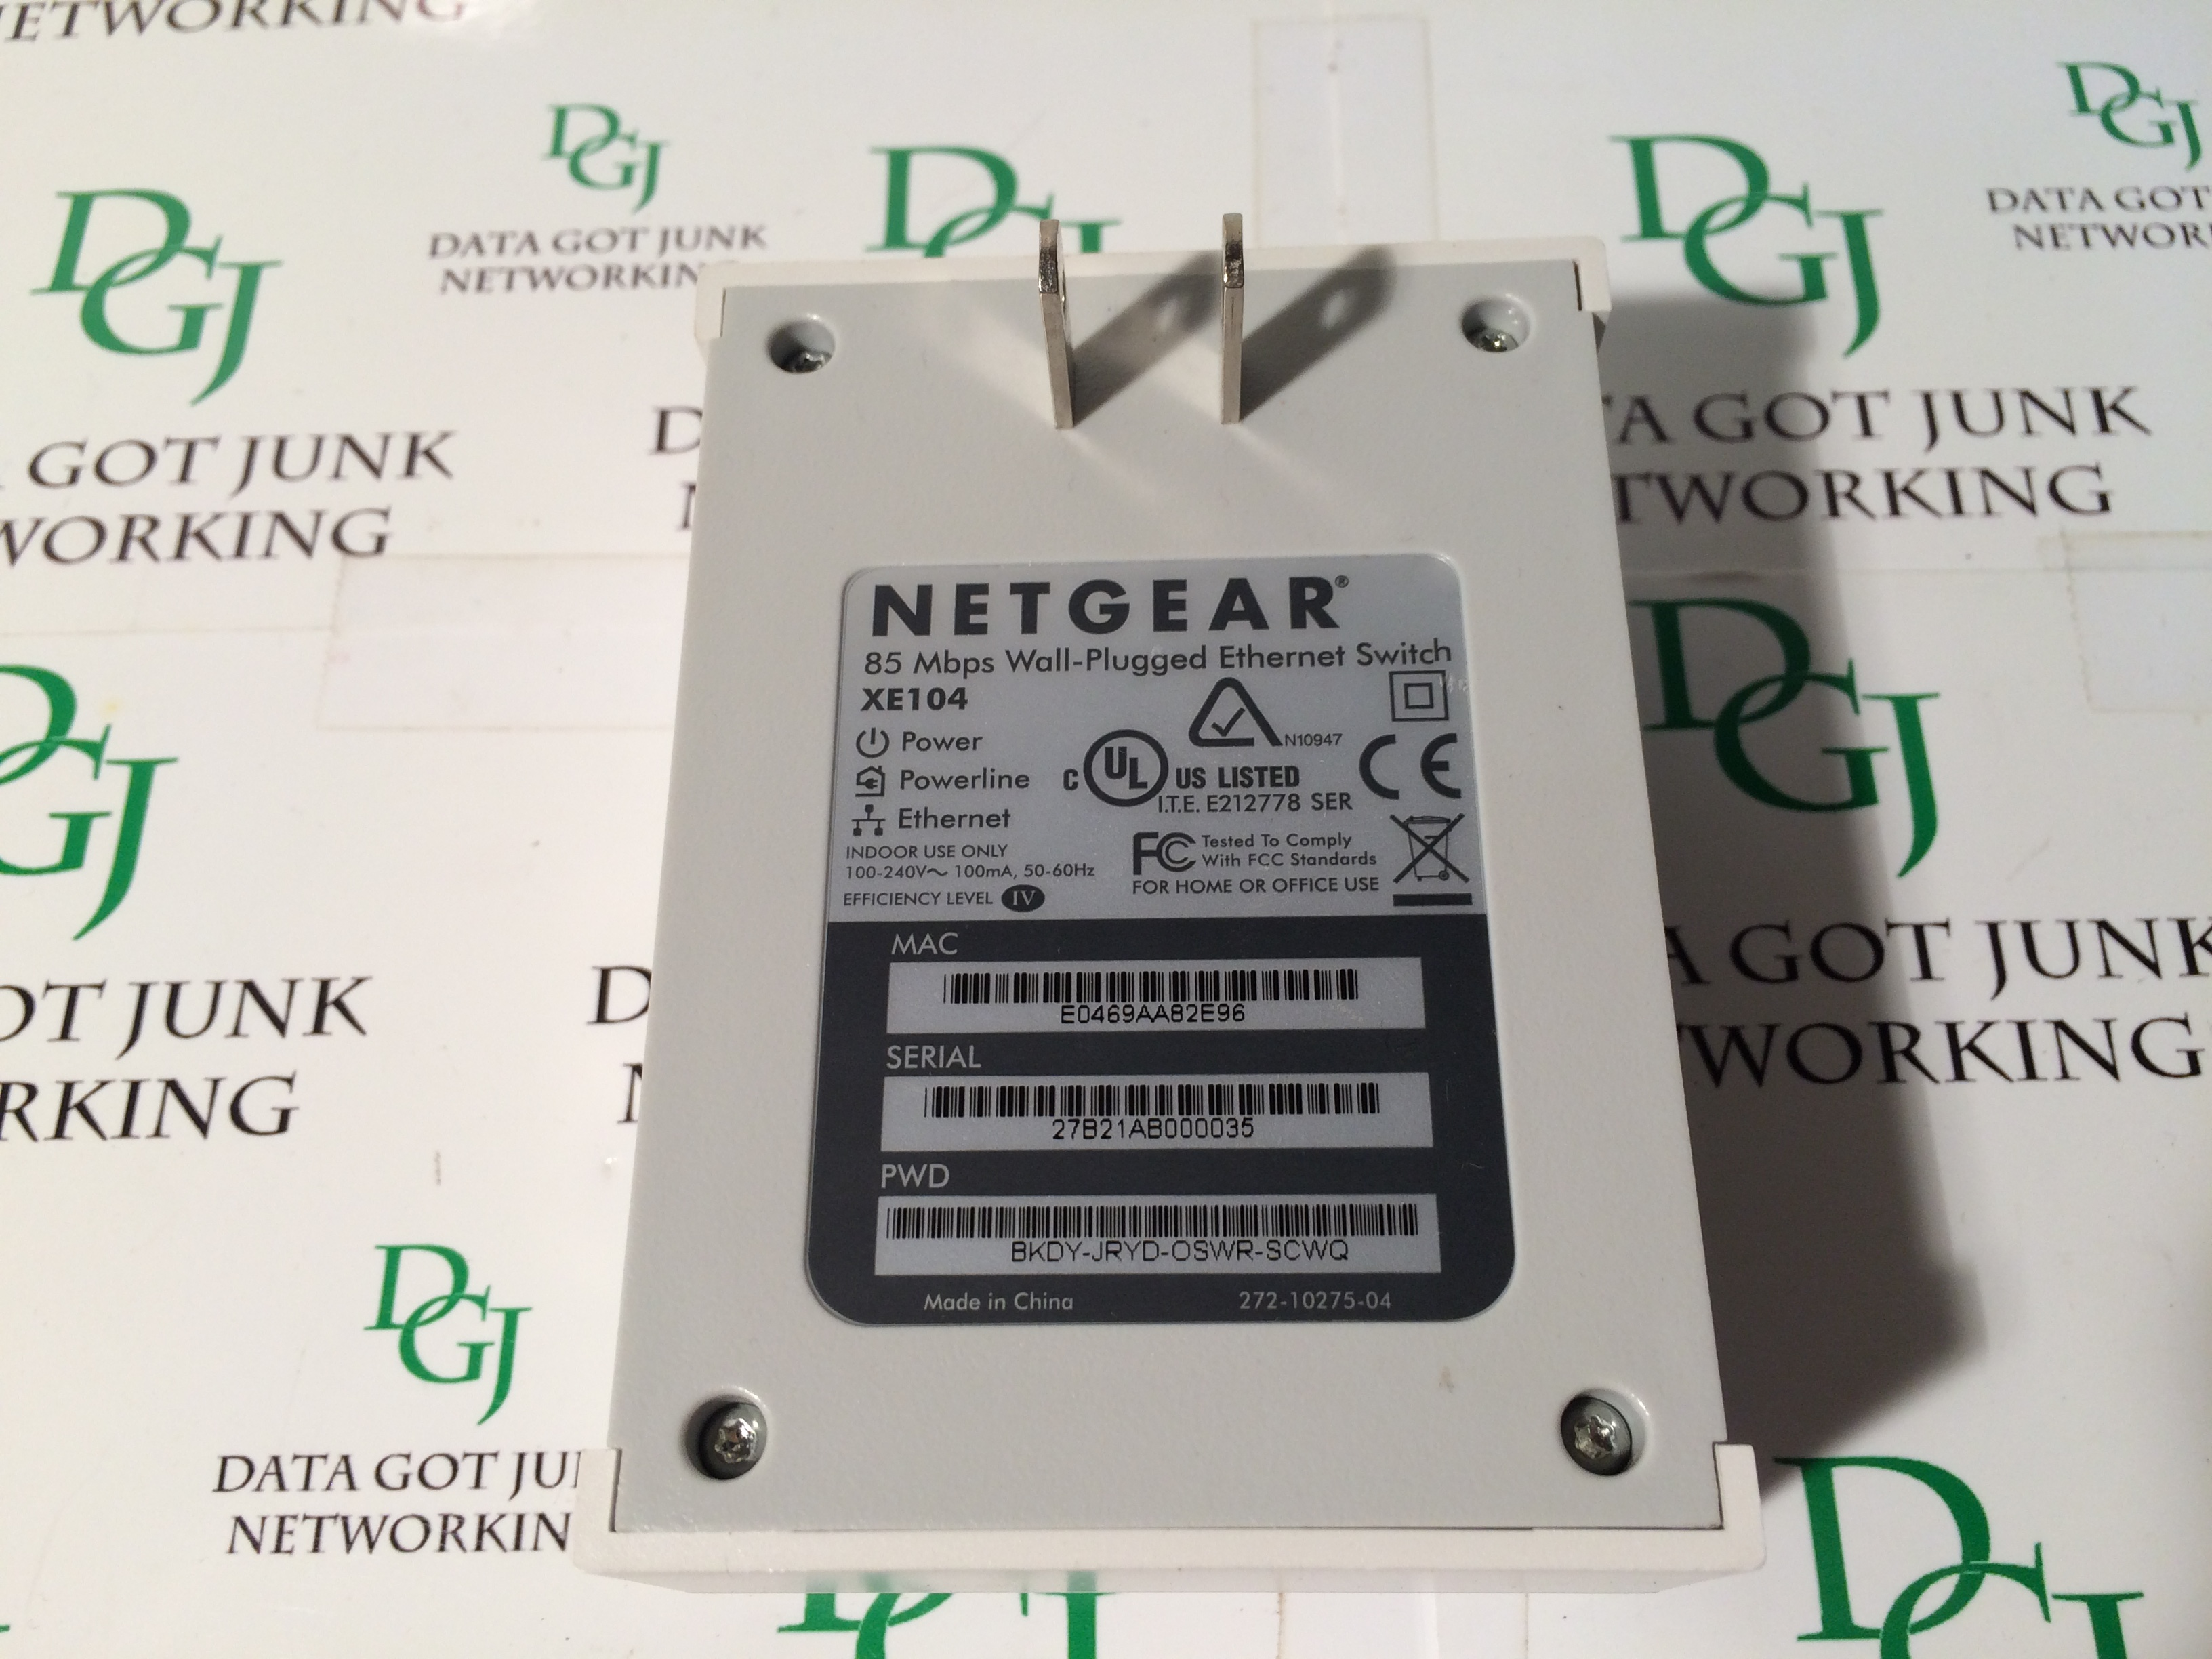 Netgear xet1001 & xe104 85mbps wall-plugged ethernet adapter kit.